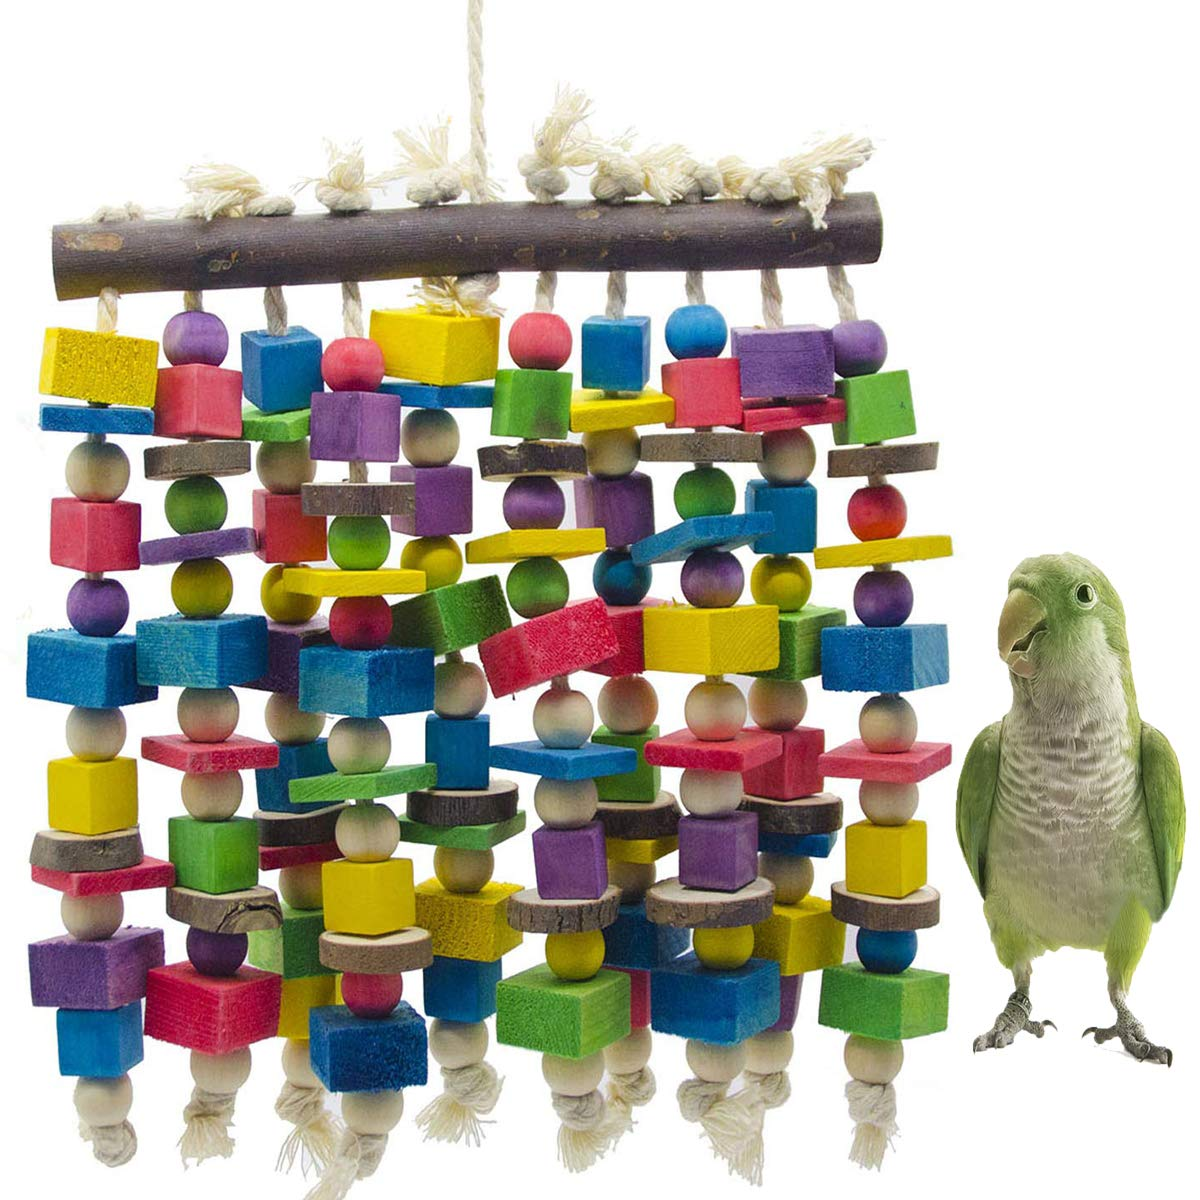 MQ Bird Chewing Toys Parrot Bite Toy Wooden Block Multicolor Beads for Lovebirds Small and Medium Parrots and Birds by MQ